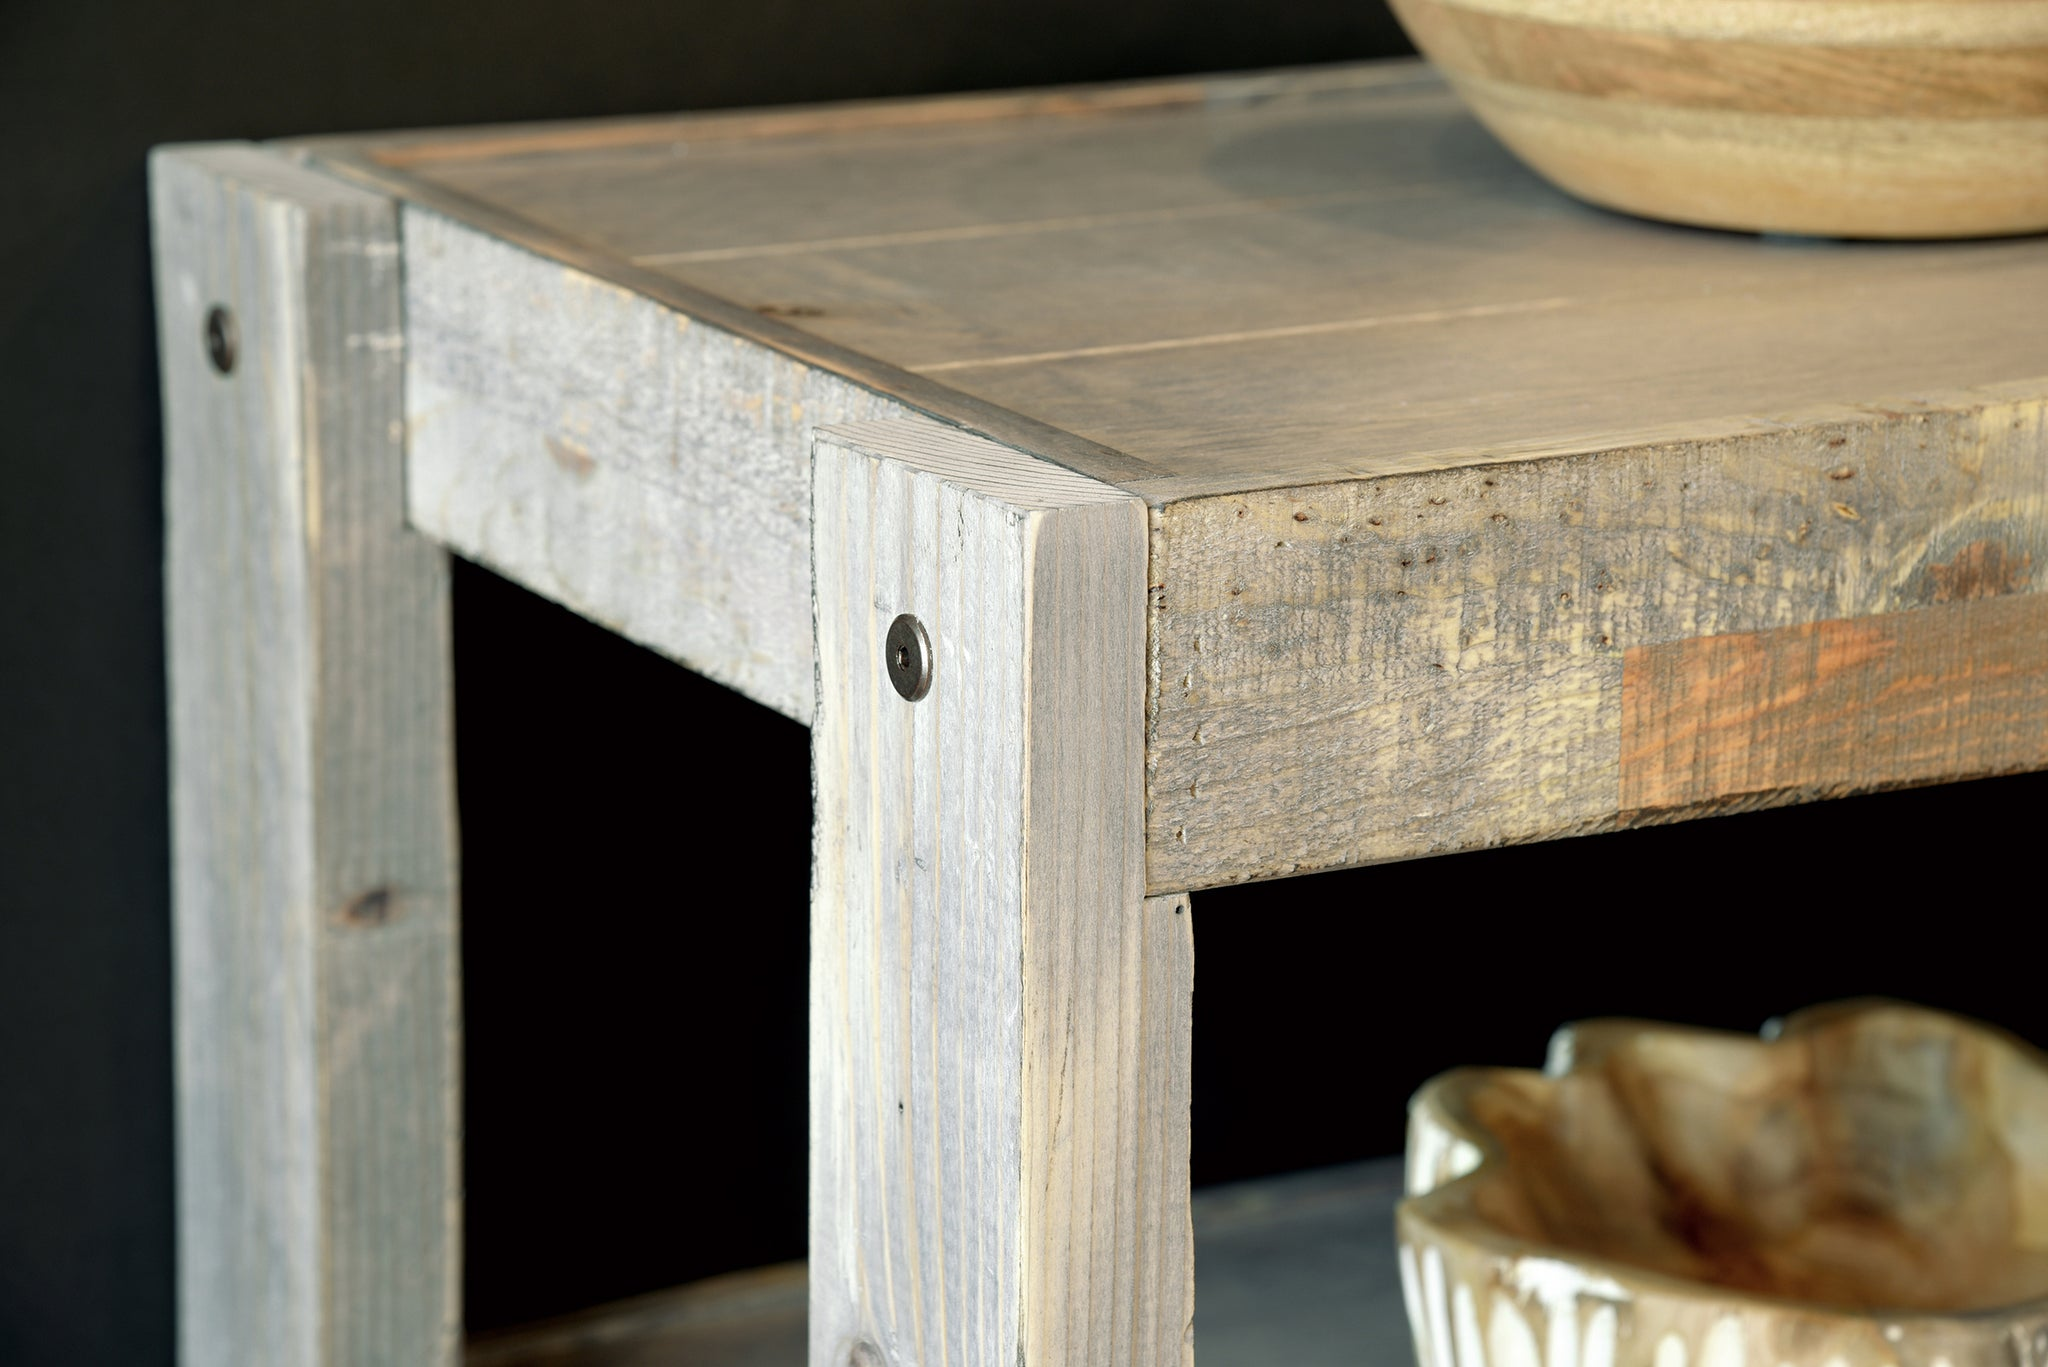 Gray Rustic Reclaimed Barn Wood Style Entertainment Center TV Stand & Coffee Table - presEARTH Lakewood